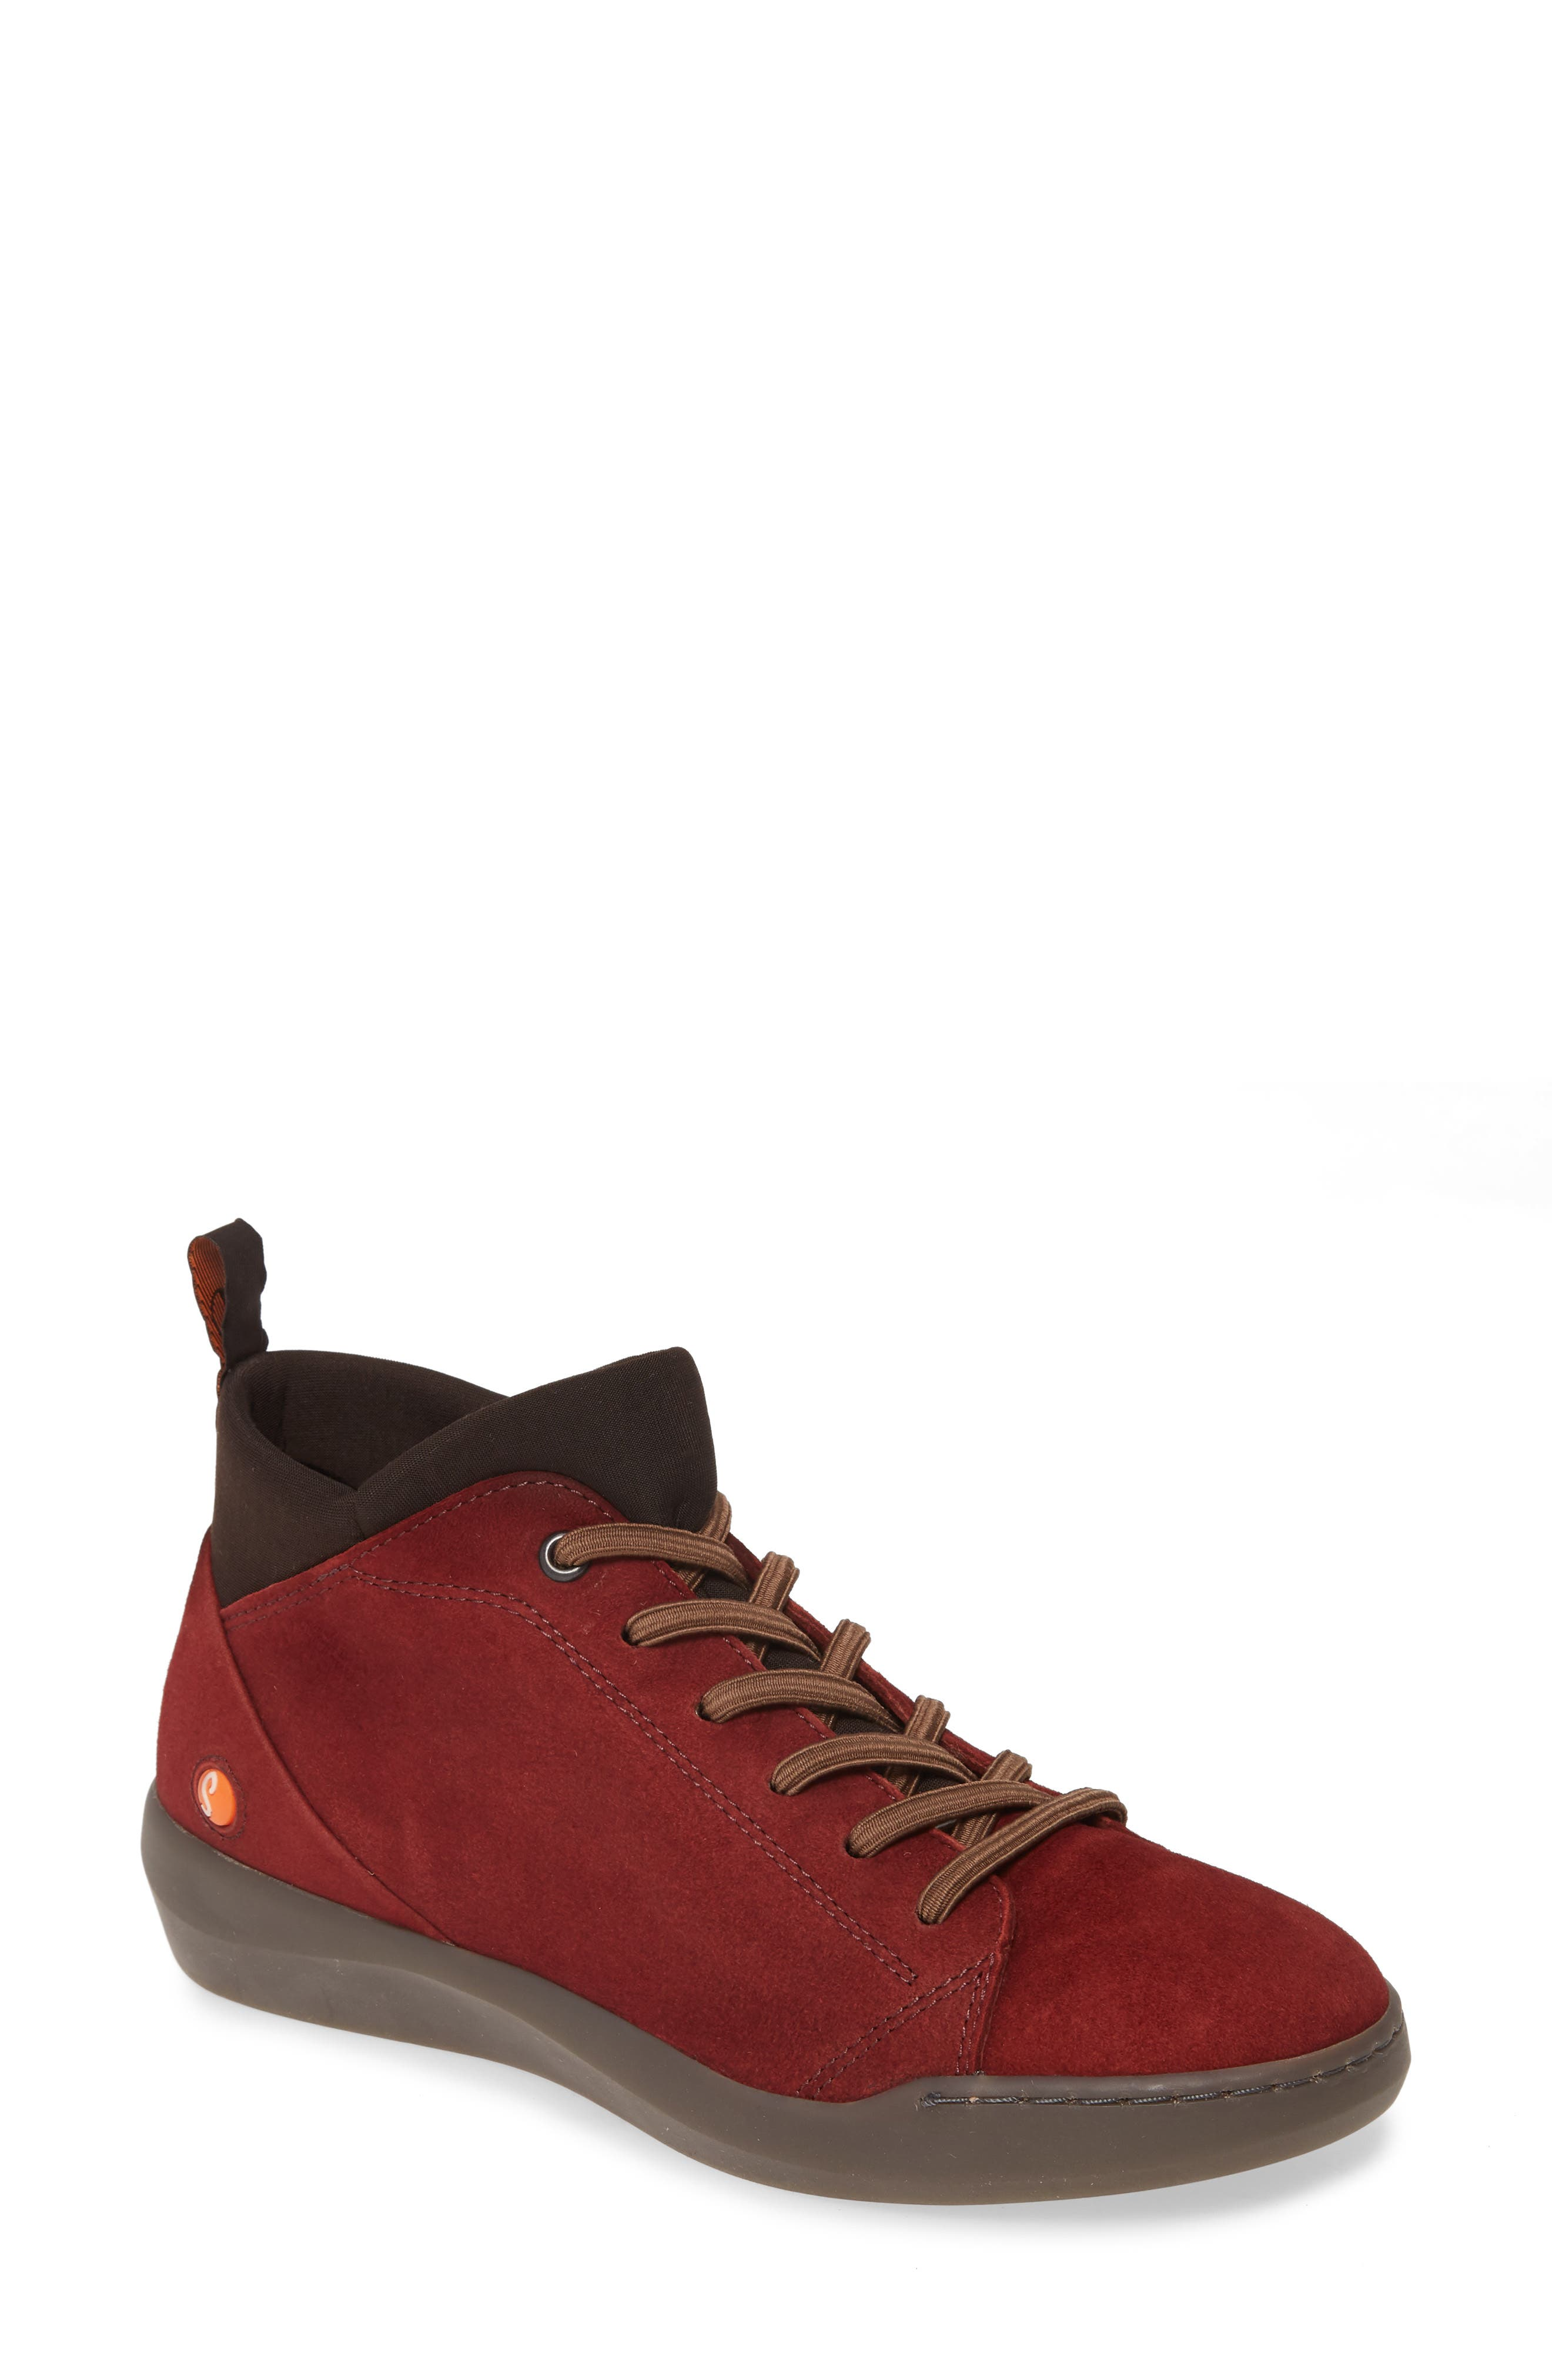 Softinos By Fly London Biel Sneaker - Burgundy